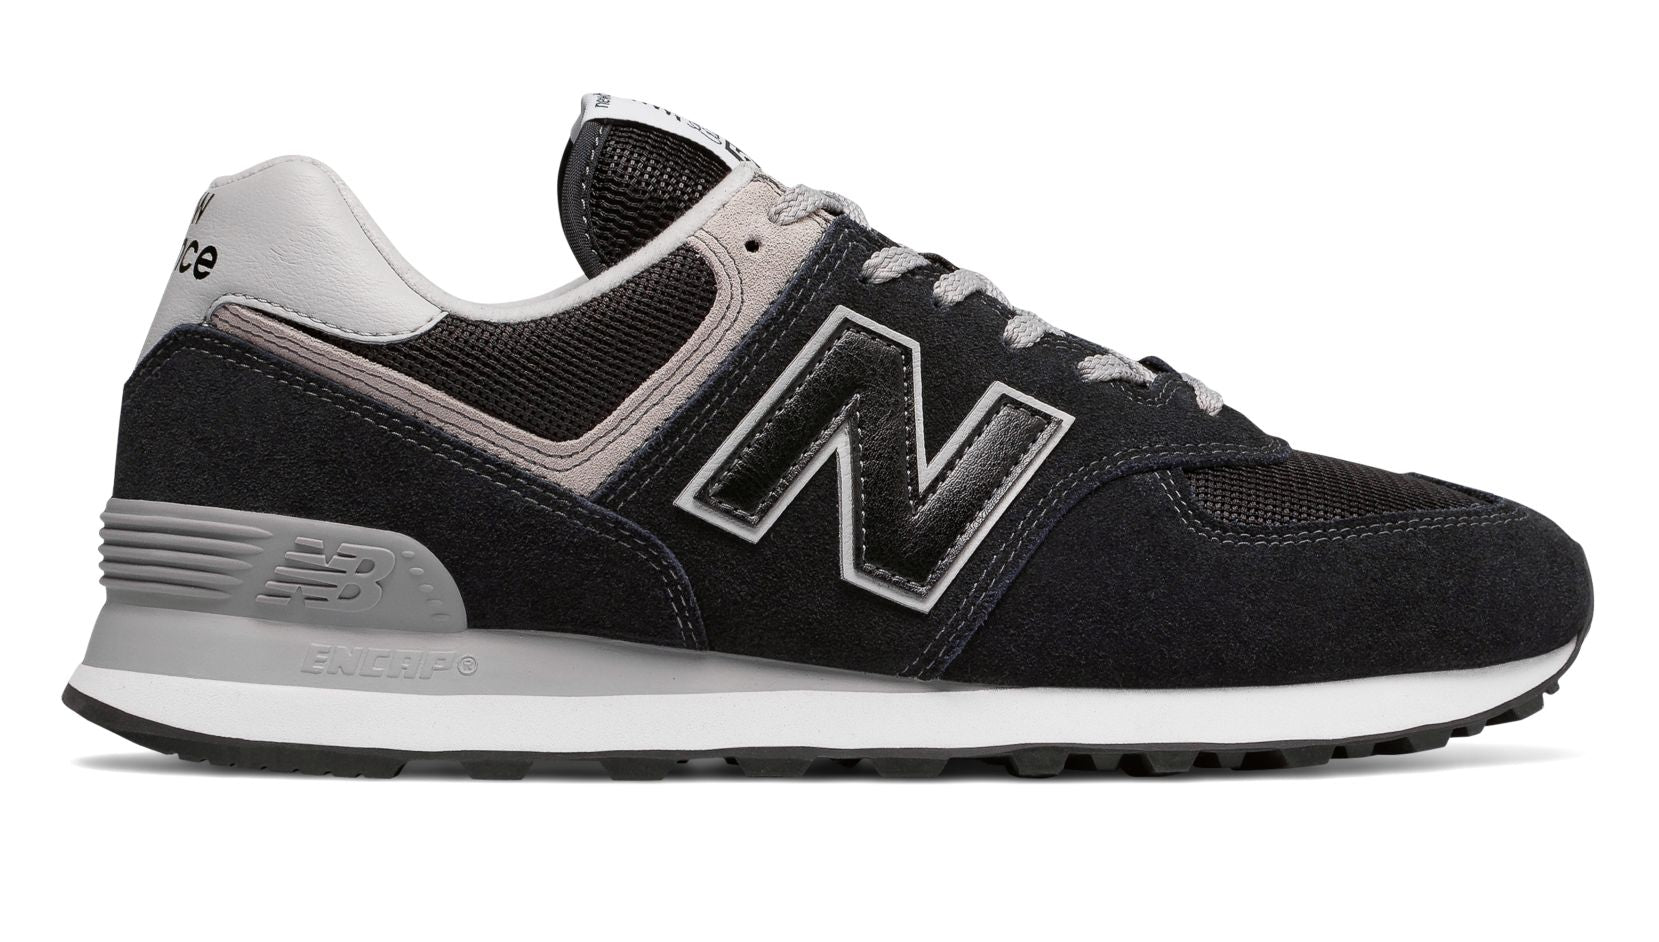 New Balance Men's Shoe Black 574 Classic